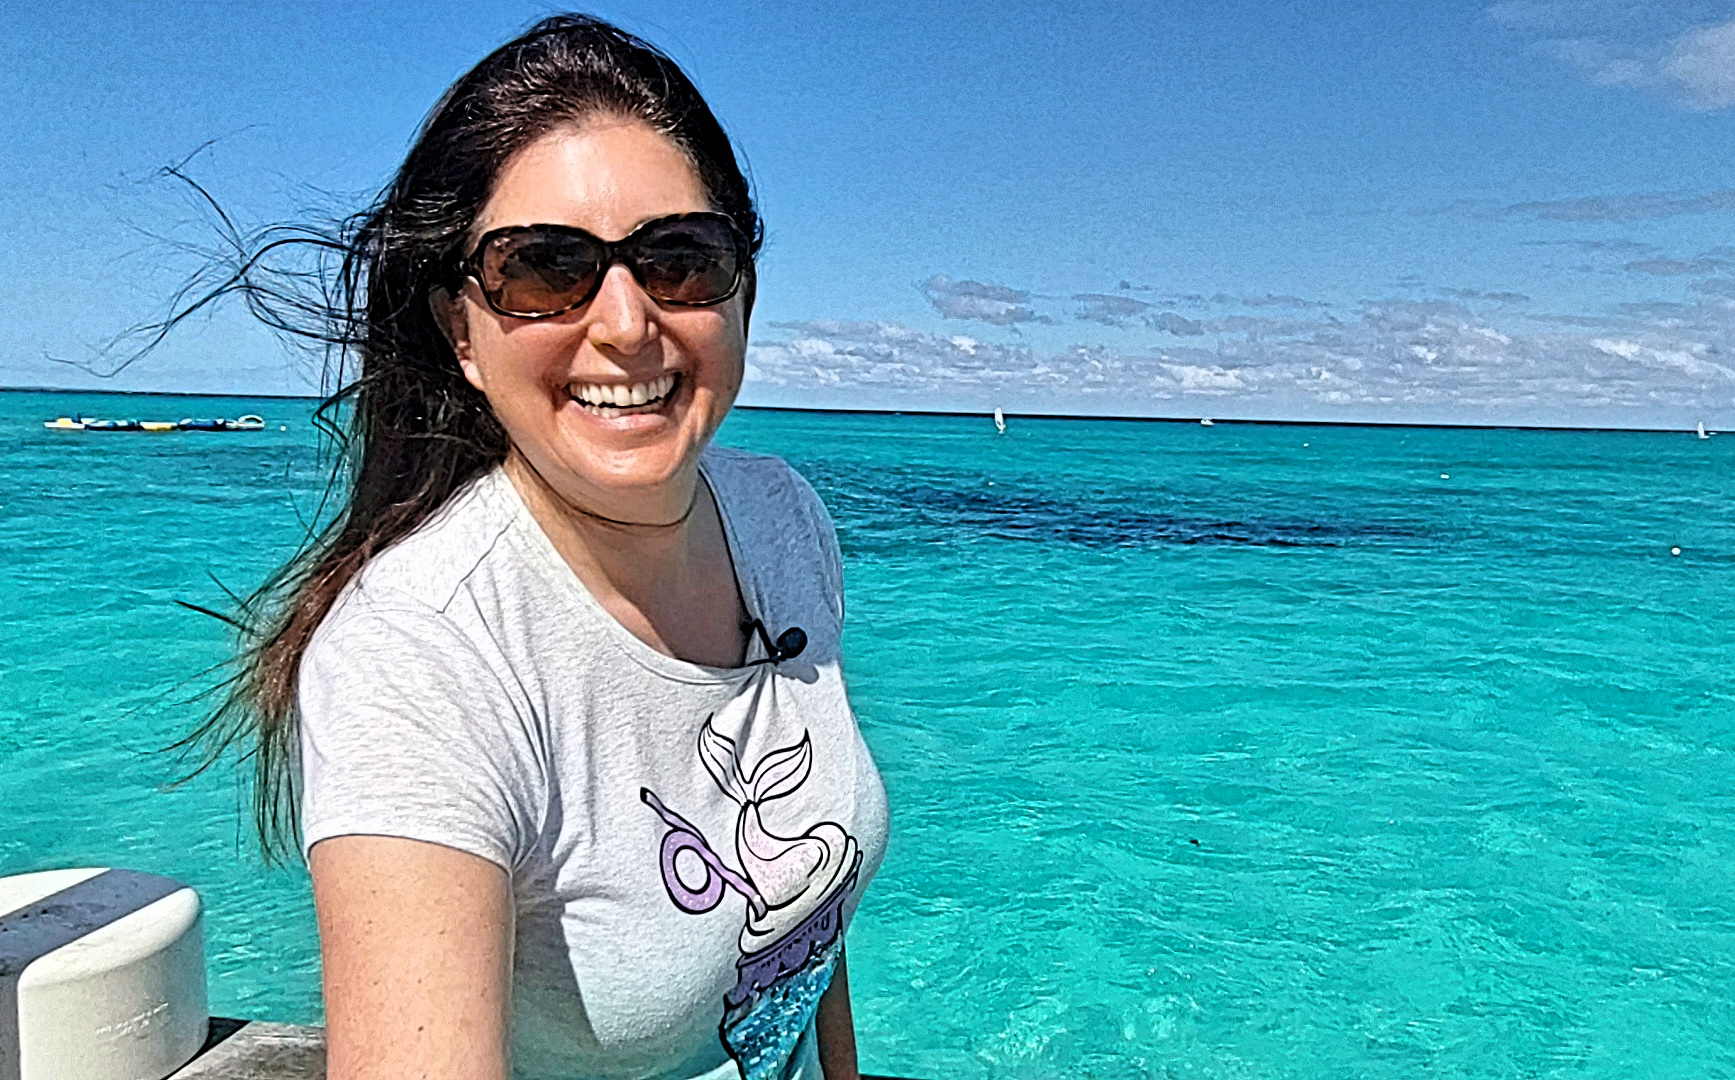 Lisa Niver at Dive-in with PADI at Beaches Turks and Caicos